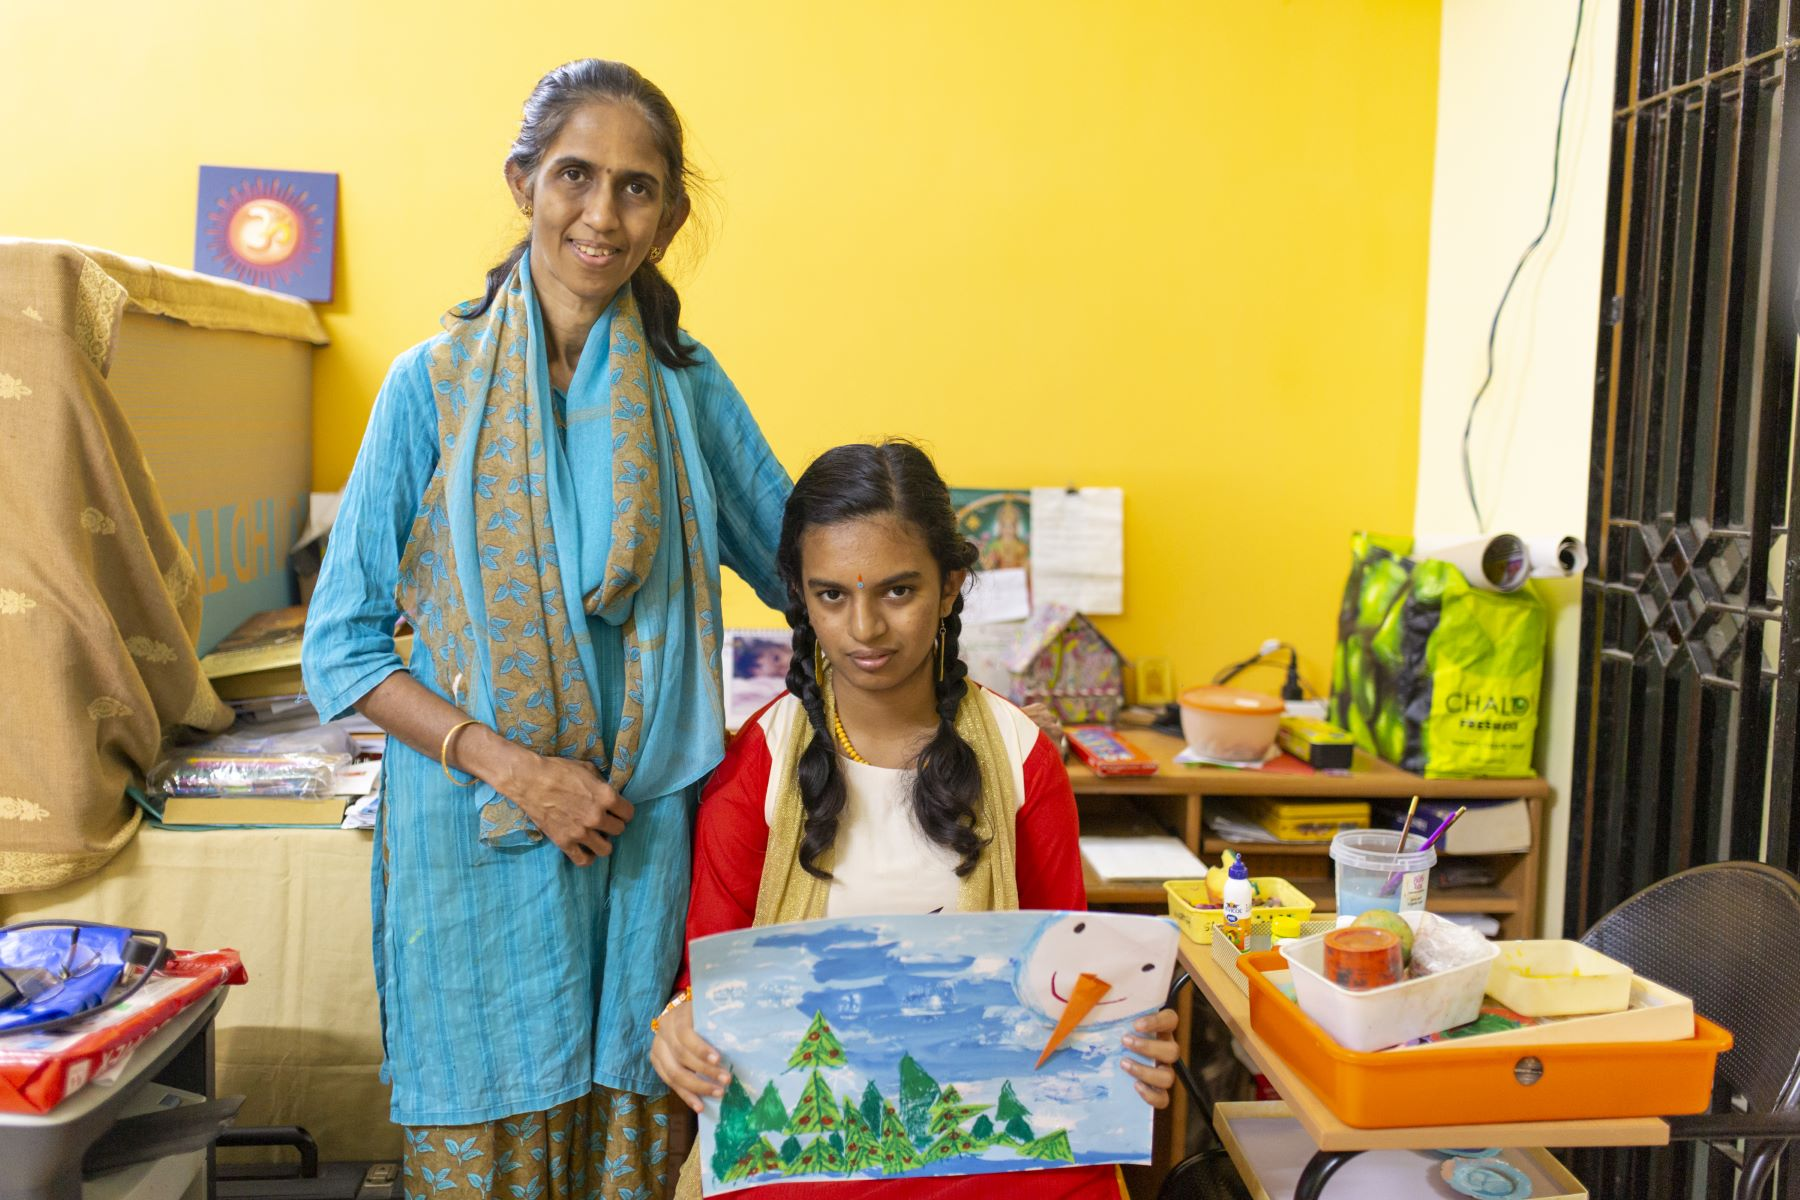 Sowdhamini and her daughter Pavitra presenting the art she made in one of her online art class sessions conducted on Zoom